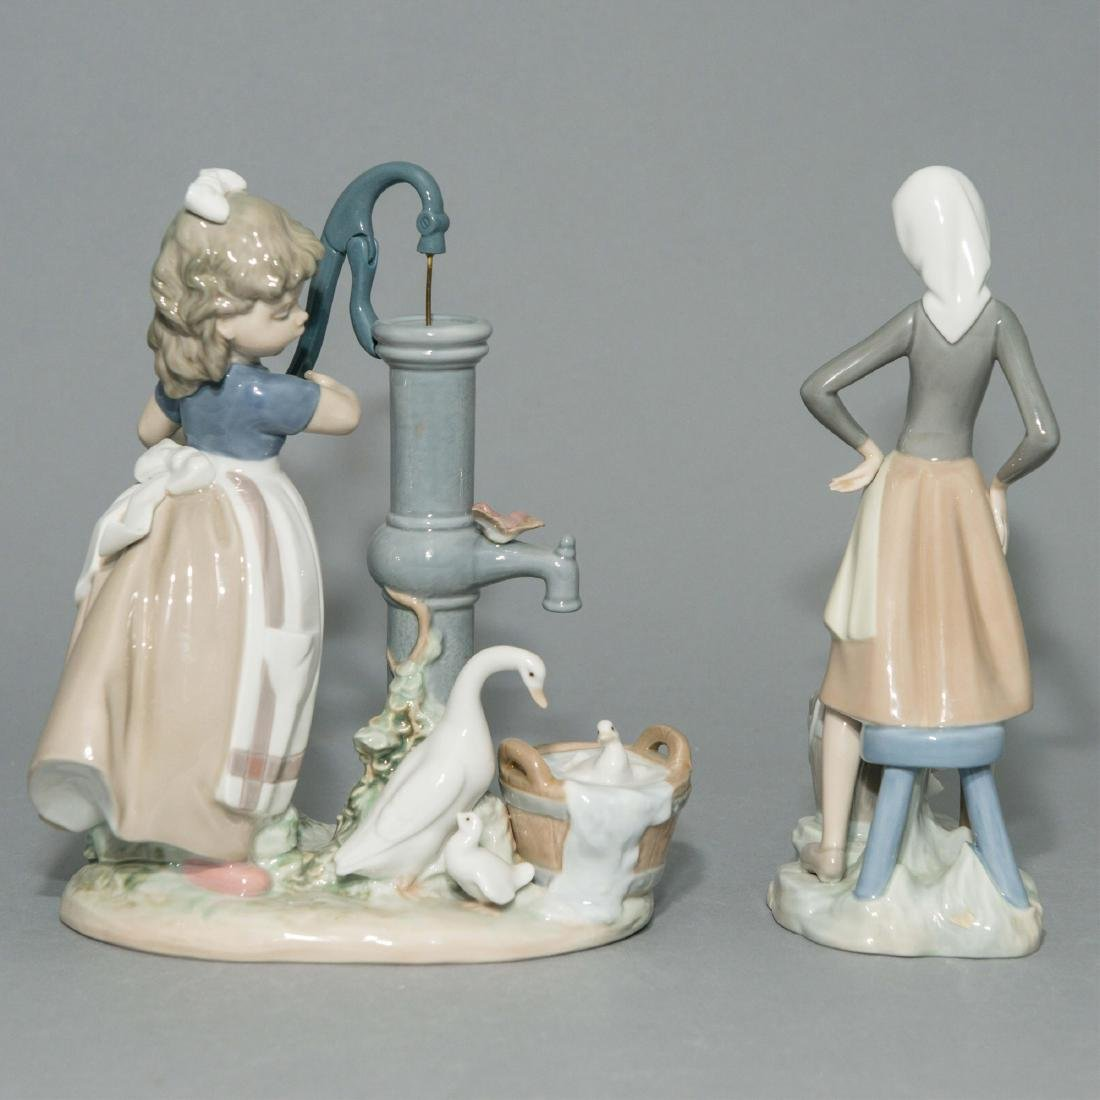 LLADRO GIRL WITH MILK PAIL AND SUMMER FIGURINES - 3